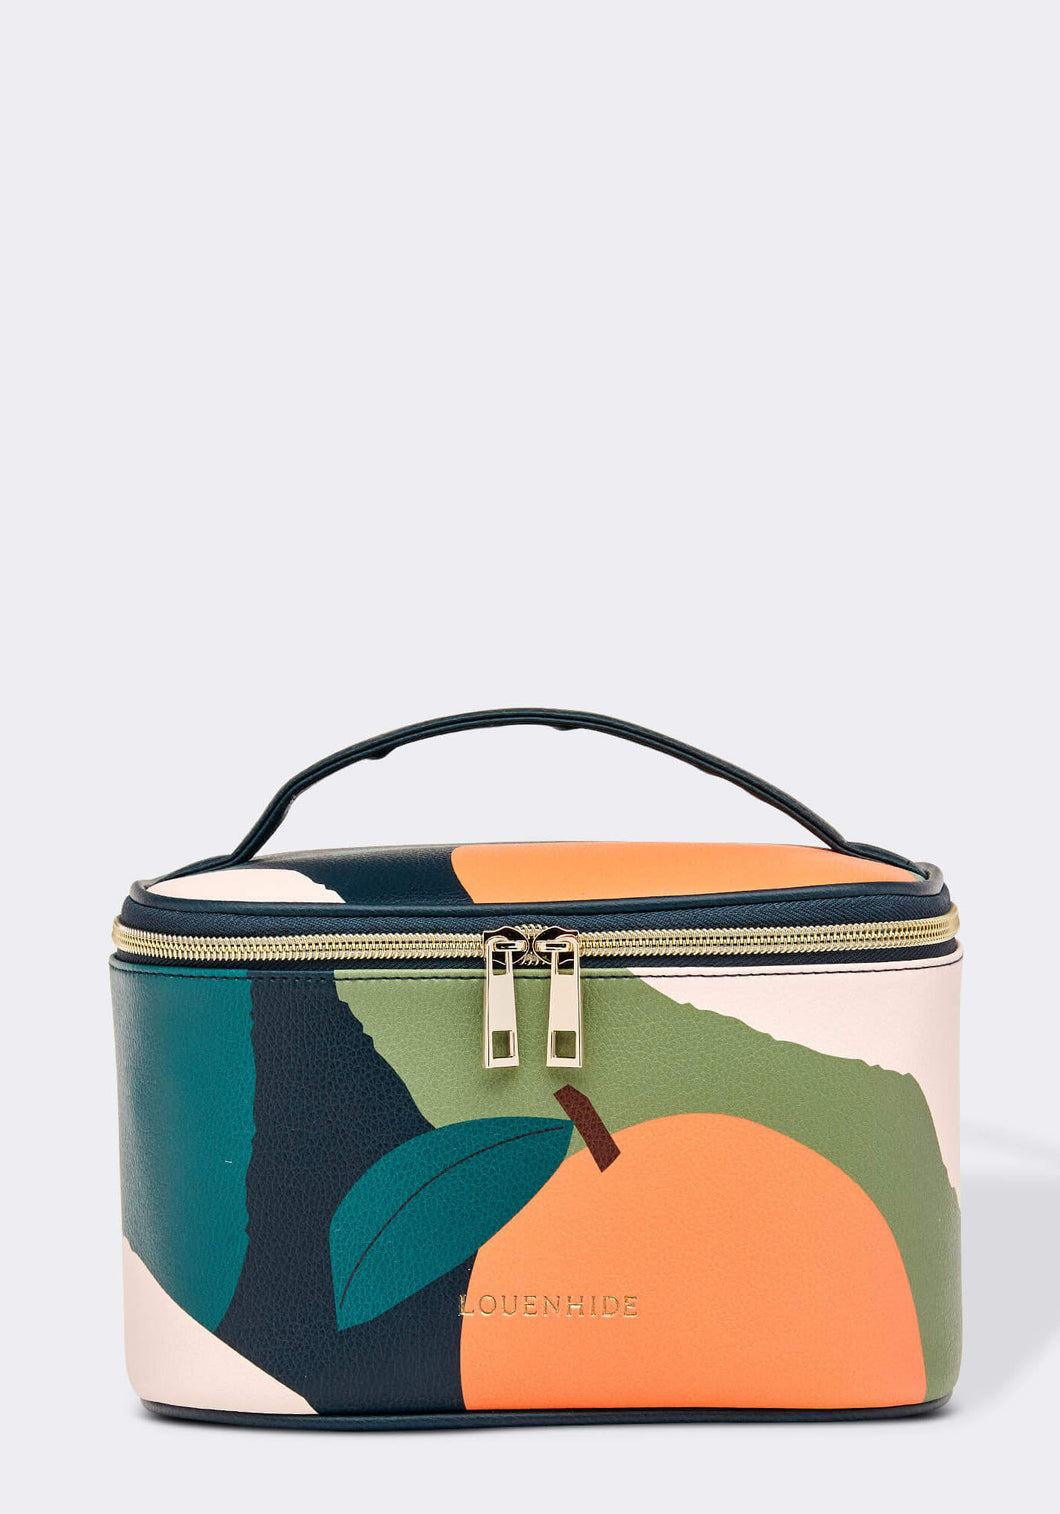 LOUENHIDE ONTARIO COSMETICS CASE - ORANGE AND GREEN